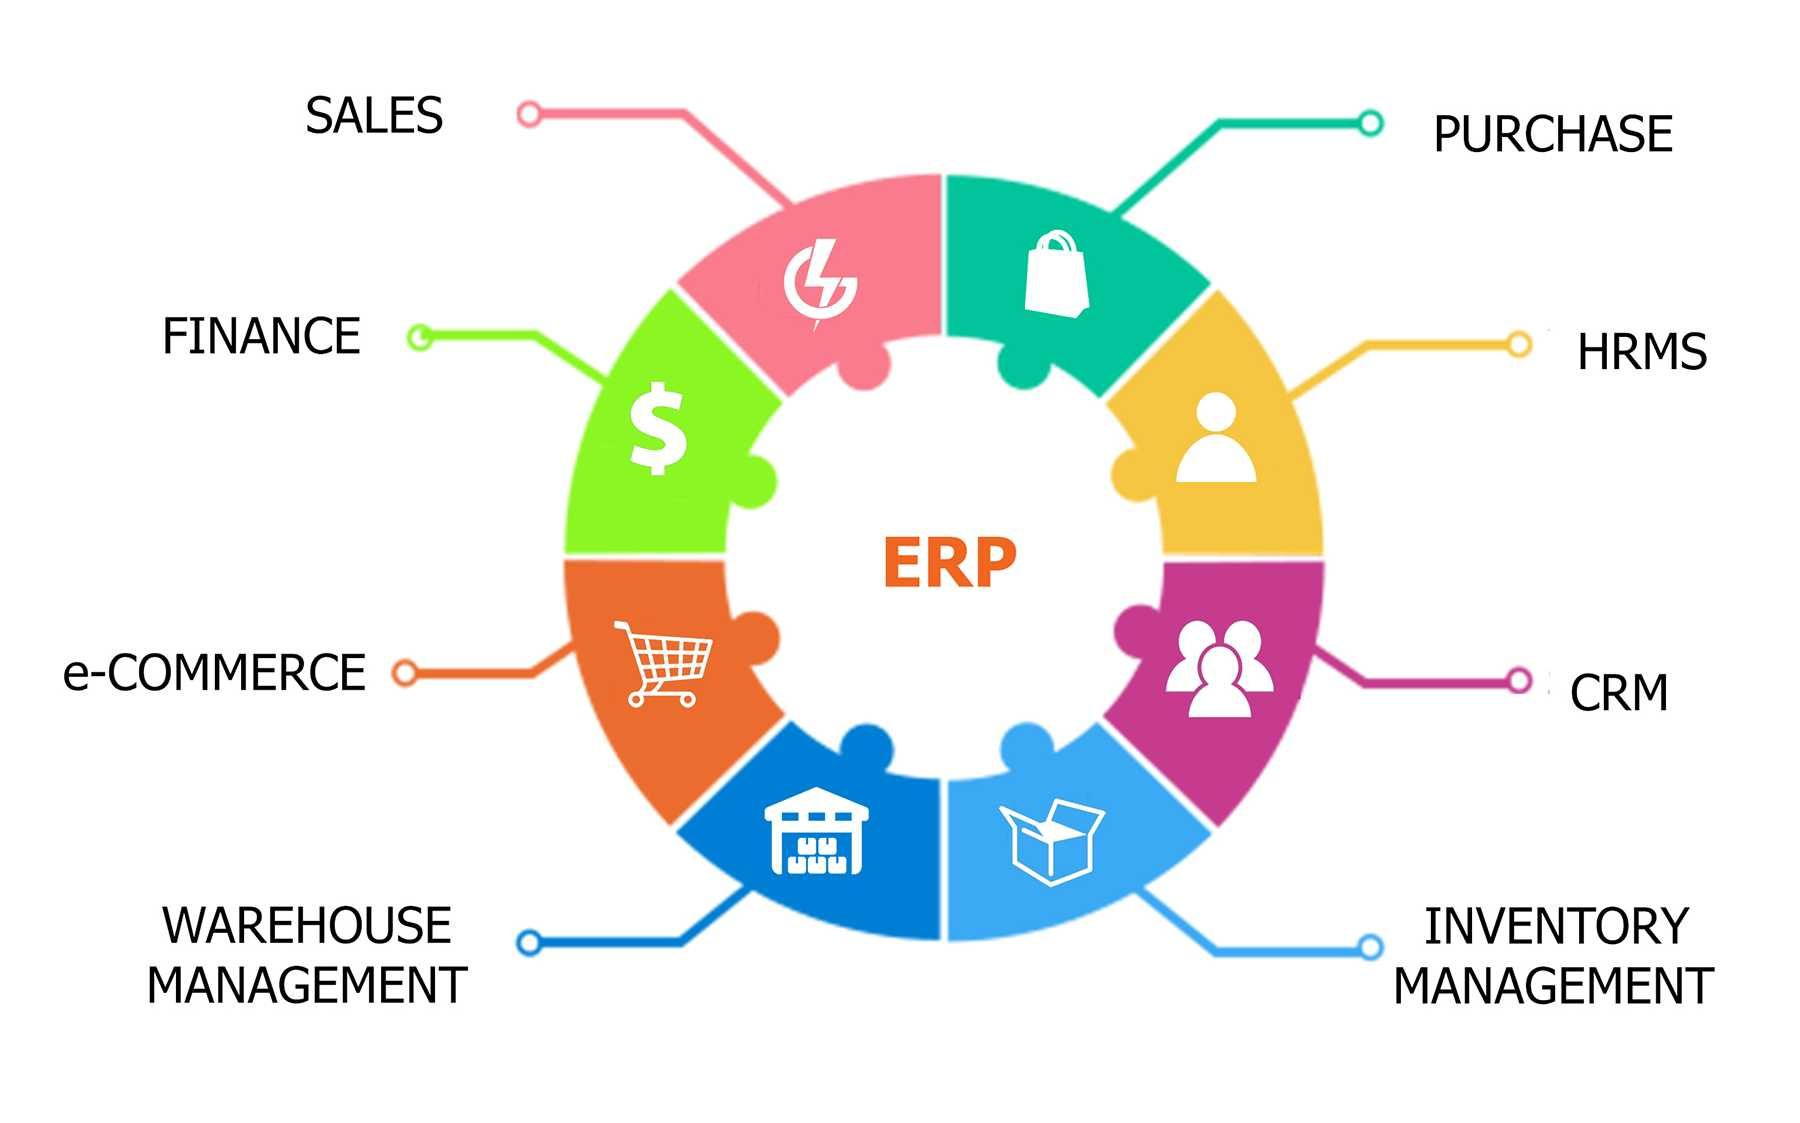 Rexo Manufacturing Erp System For Small And Large Scale Company Covers The Entire Spectrum Of Or Enterprise Application Business Management Accounting Software